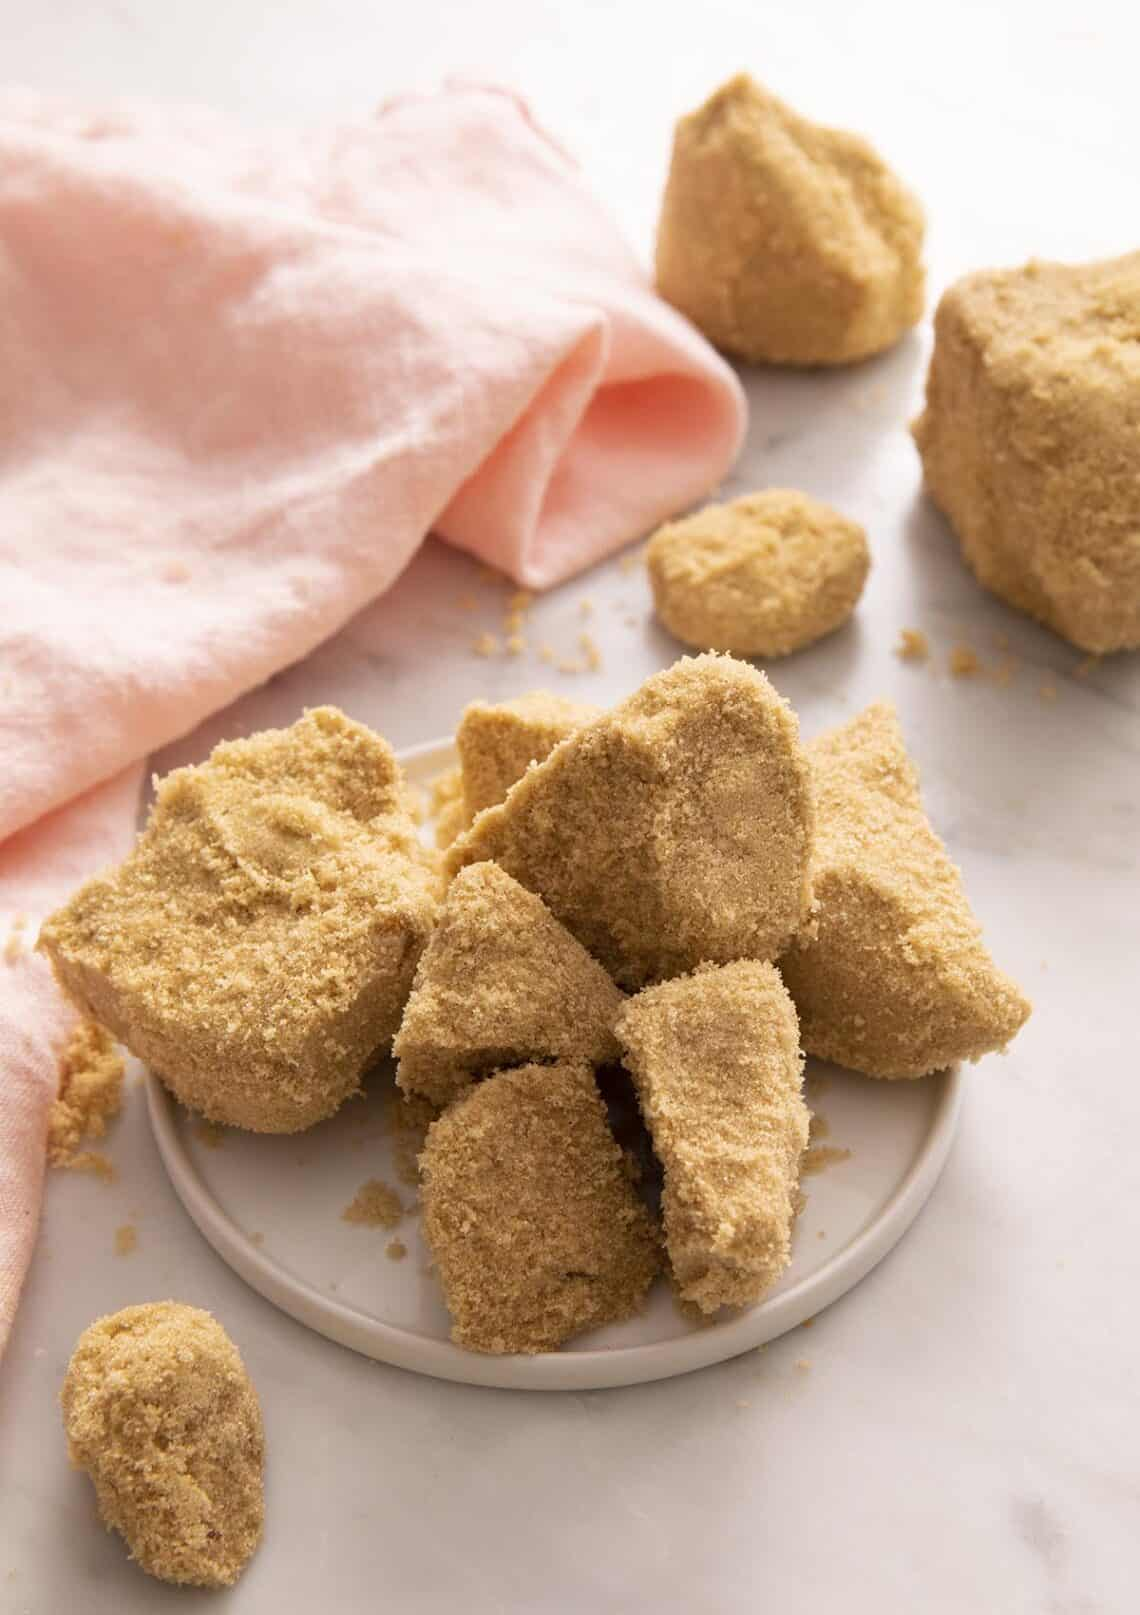 Hardened brown sugar clumps on a marble counter.